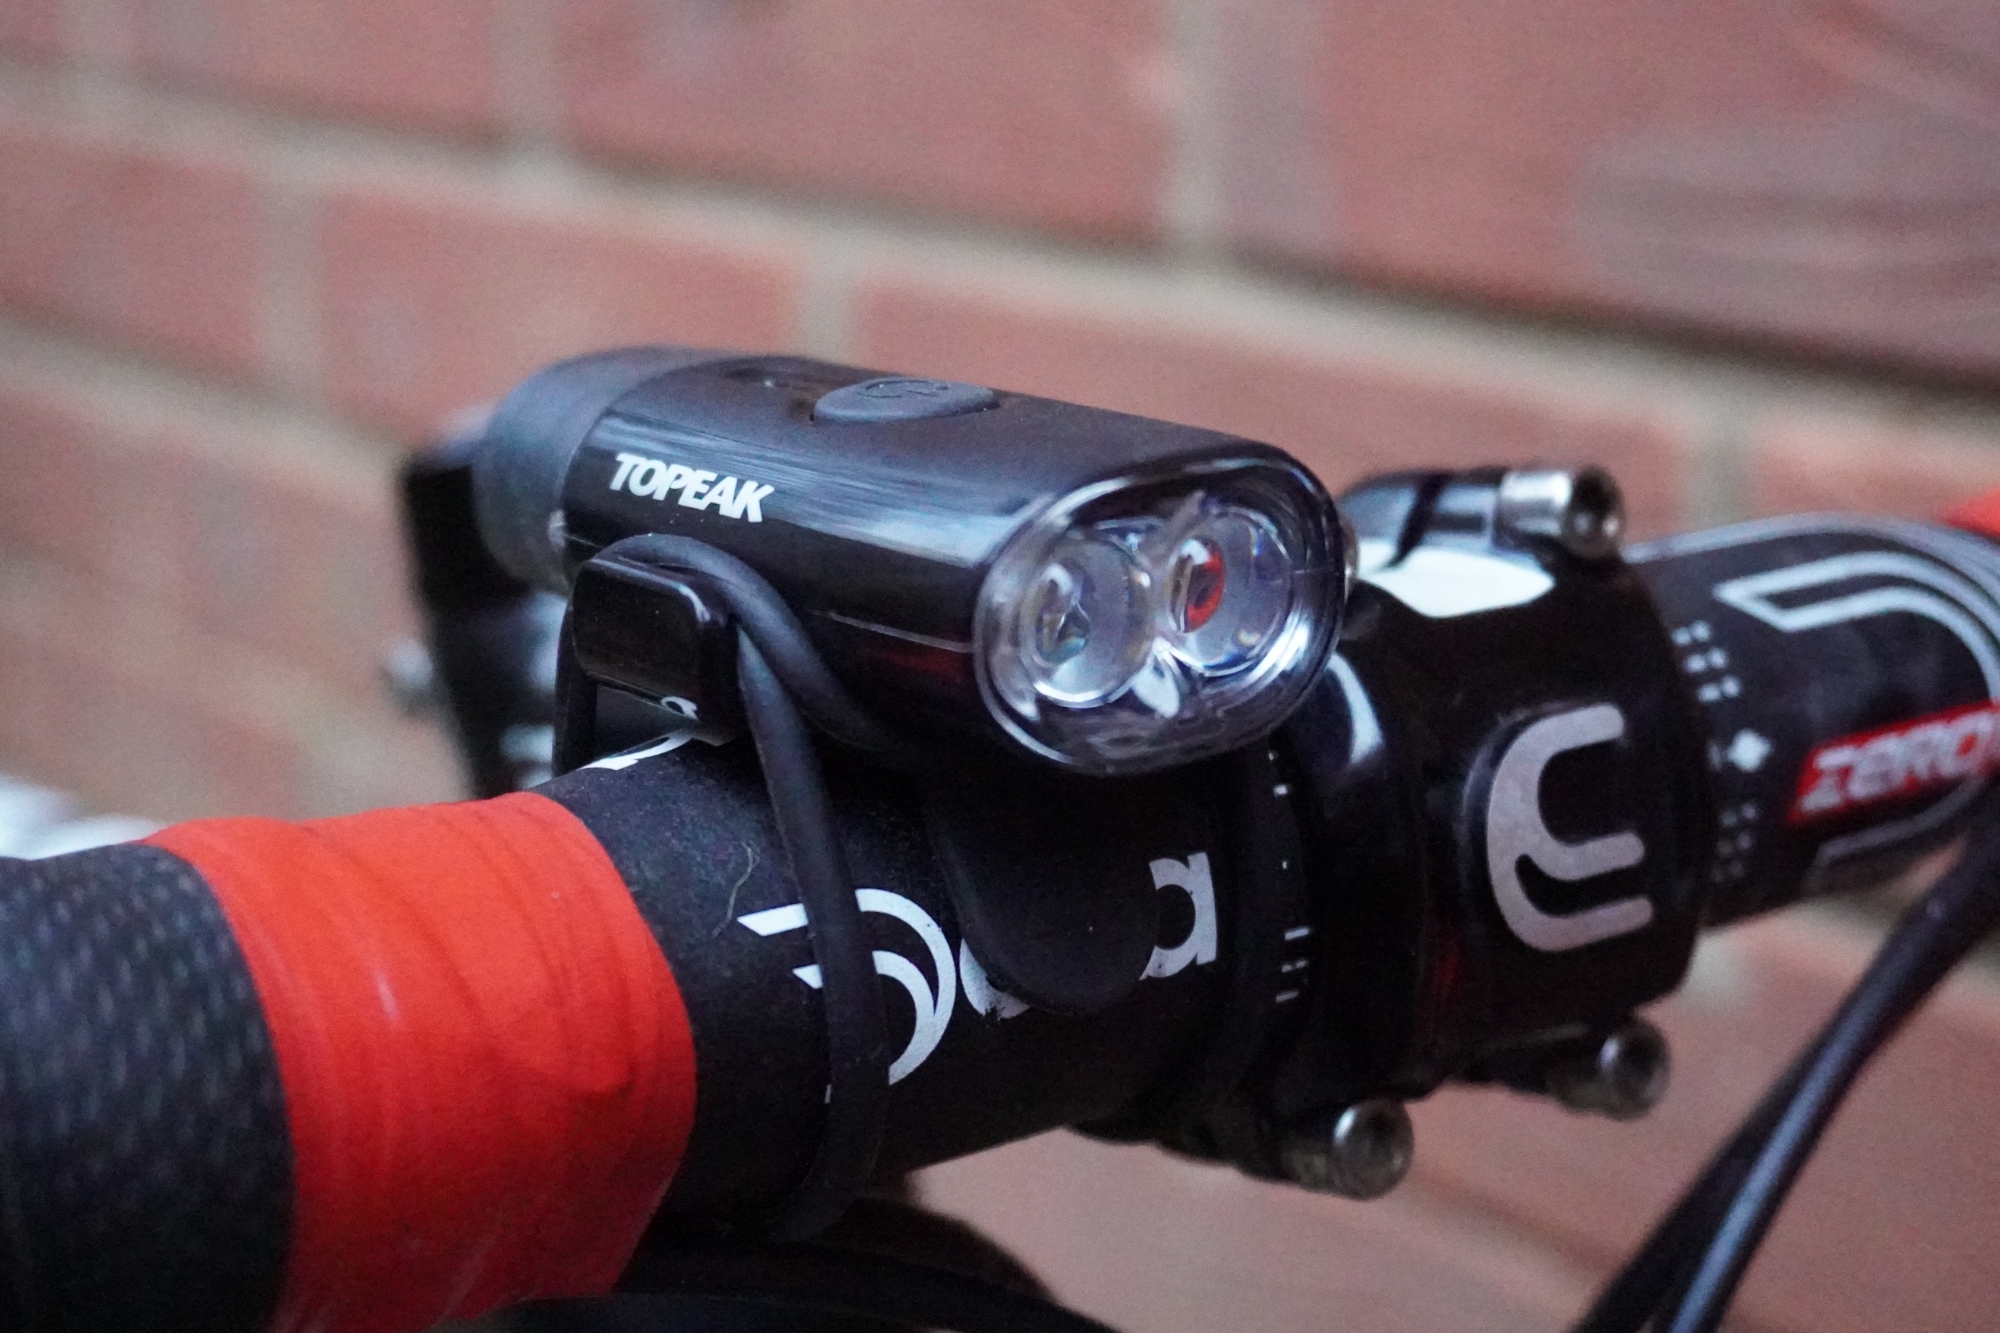 Topeak Power Lux USB Combo front and rear bike lights